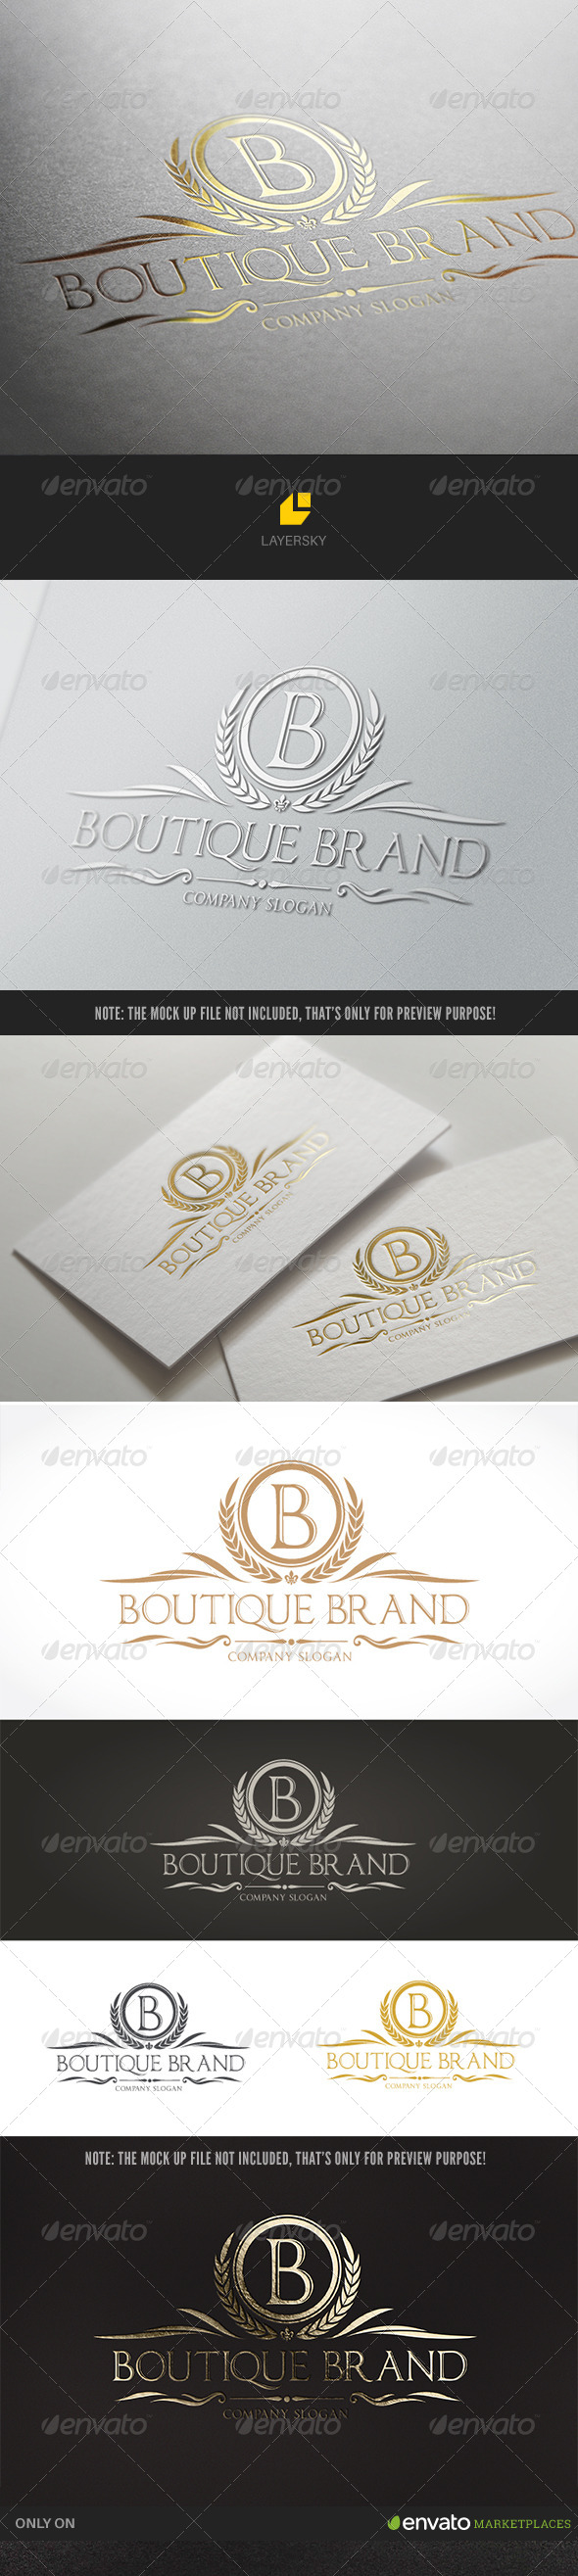 GraphicRiver Boutique Brand 8238077